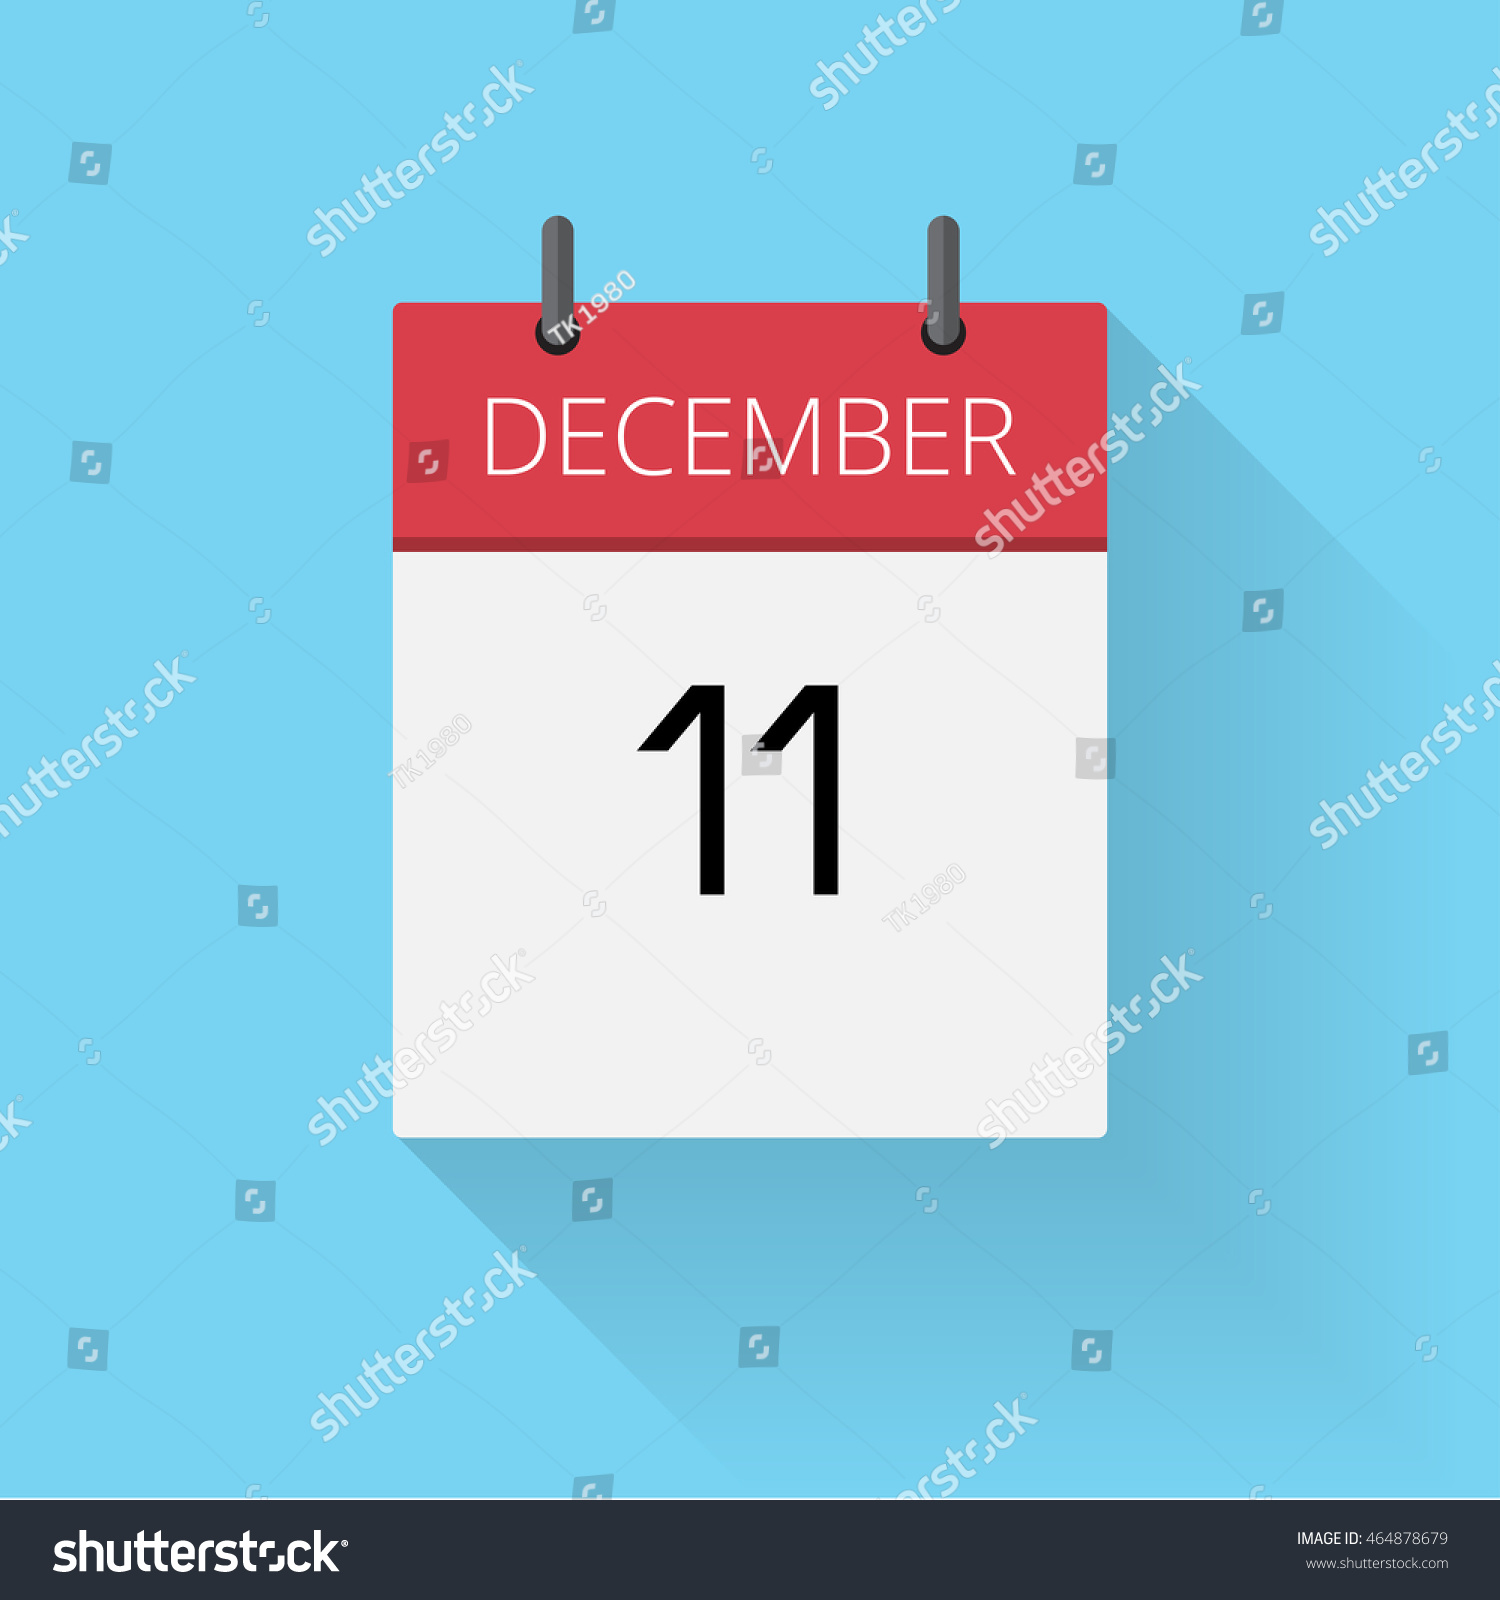 December 11 Daily Calendar Icon Date Stock Vector Royalty Free